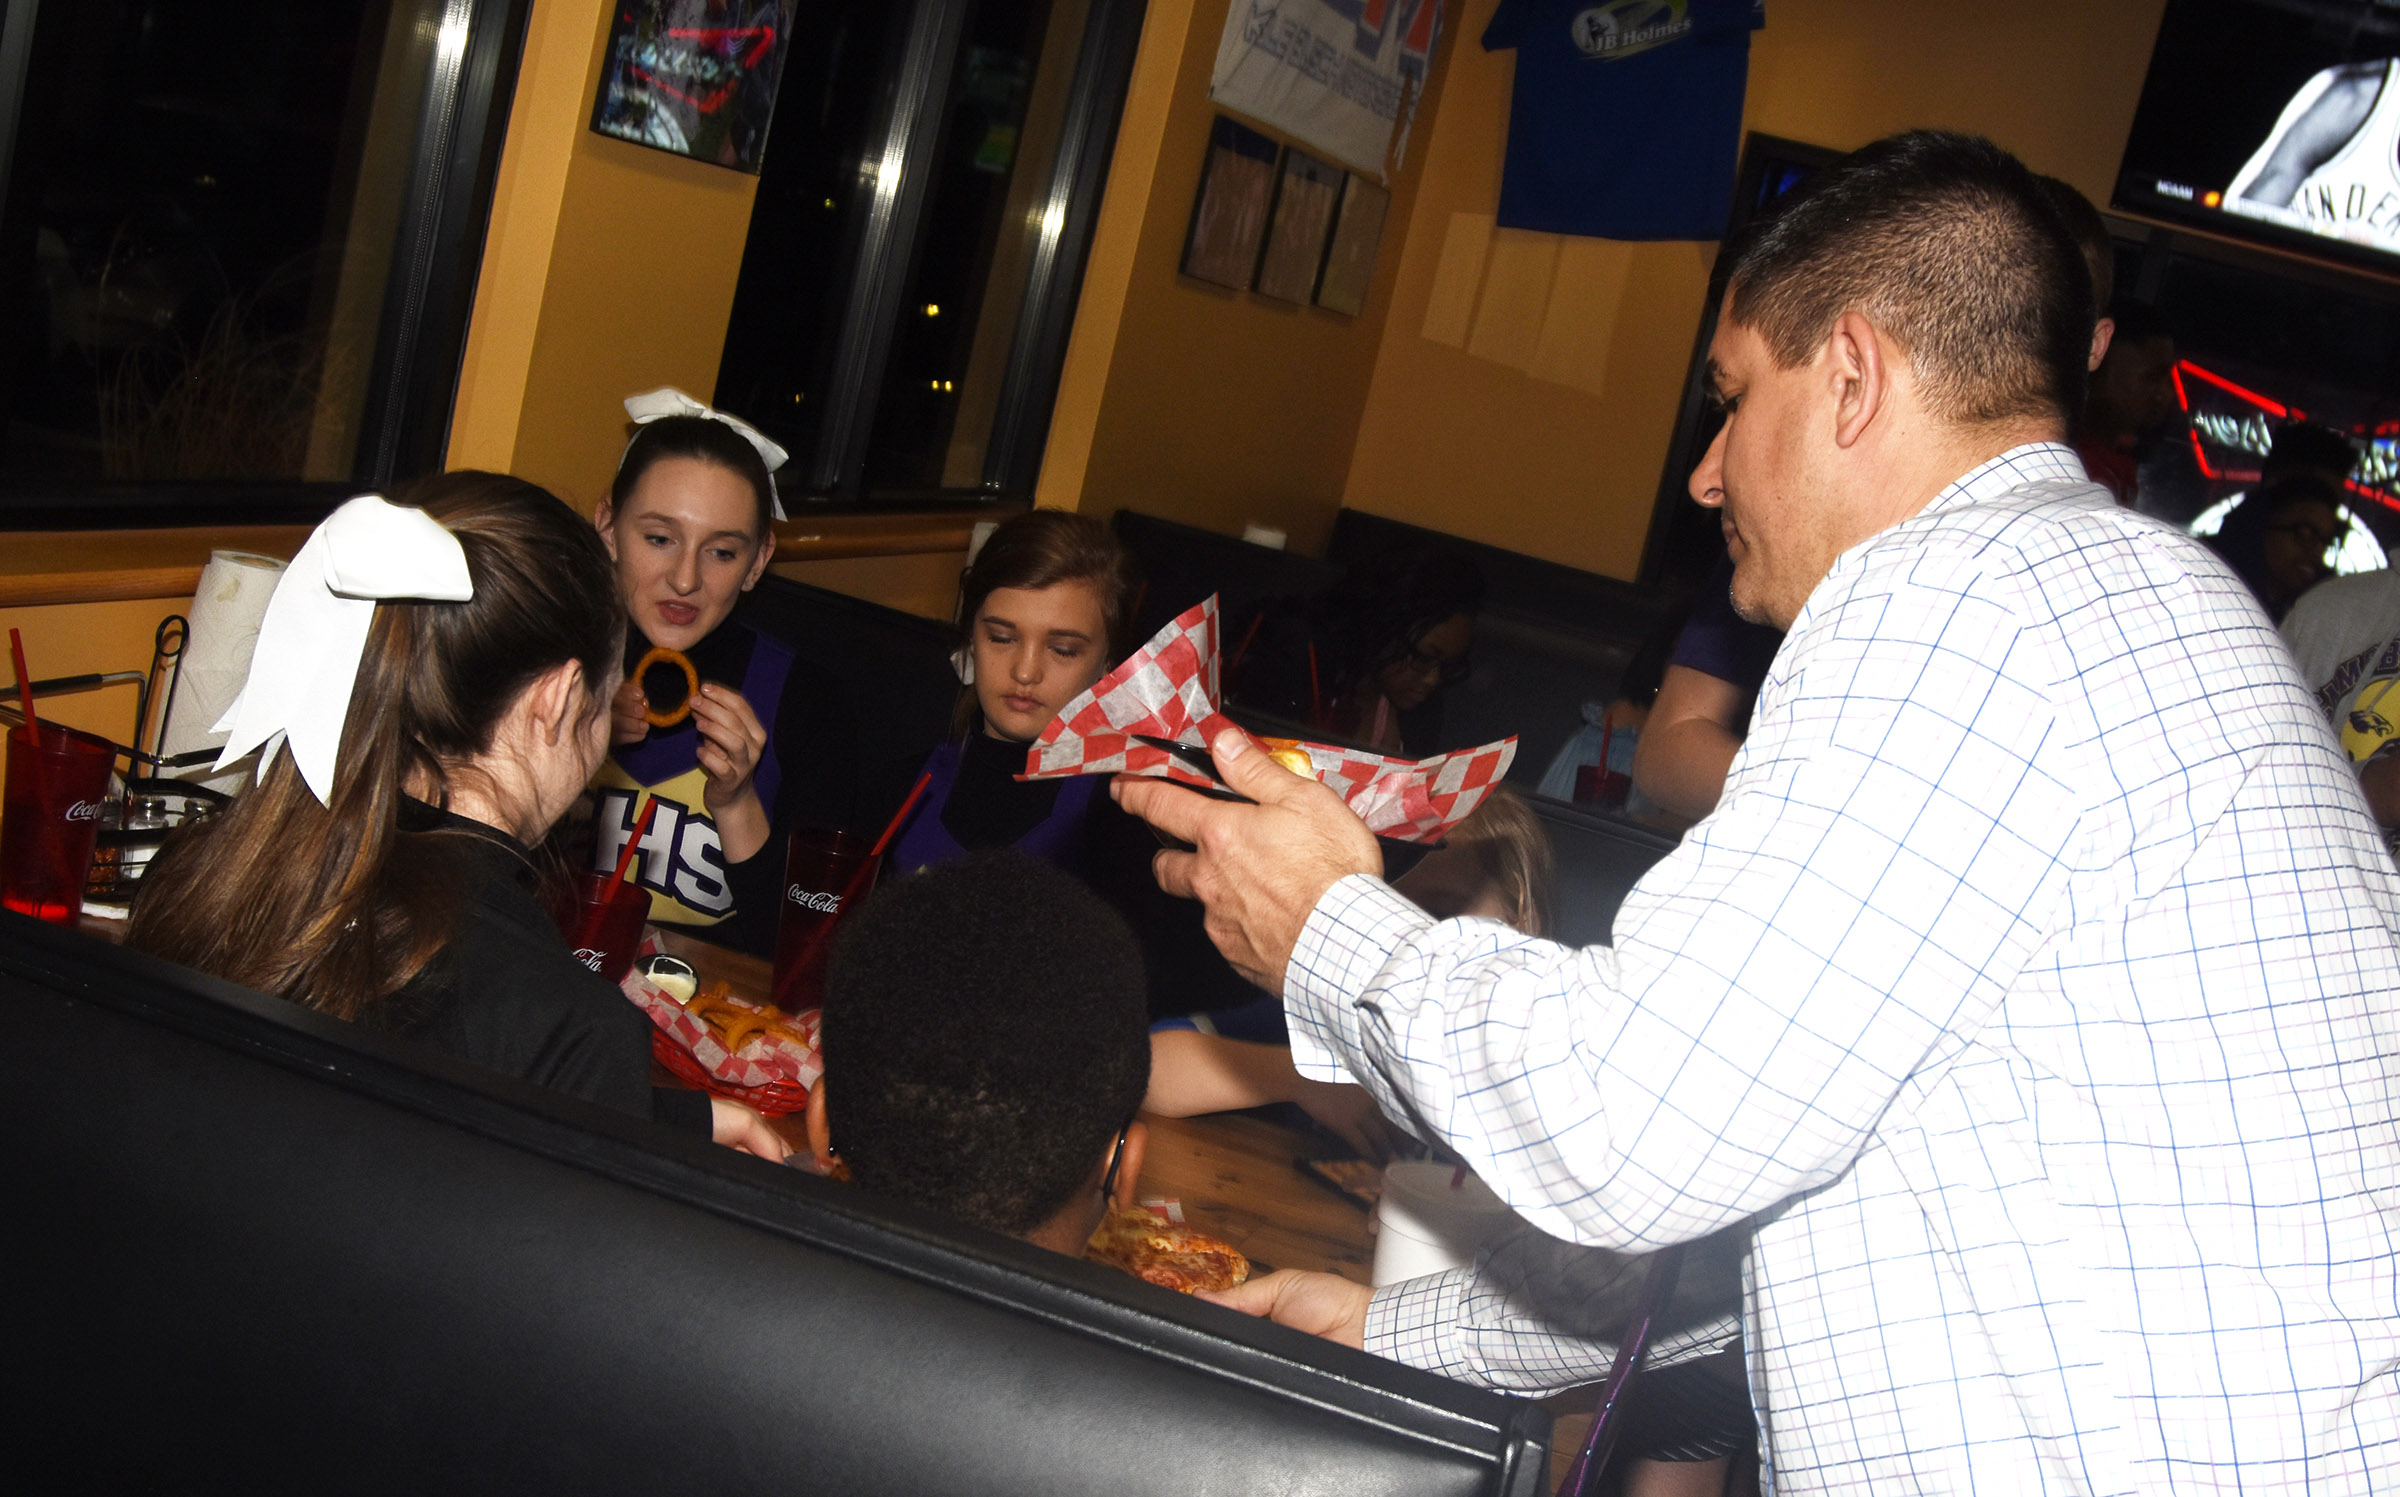 Campbellsville Independent Schools Superintendent Kirby Smith congratulates the CHS girls' basketball team during a celebration at Wings, Pizza N Things.